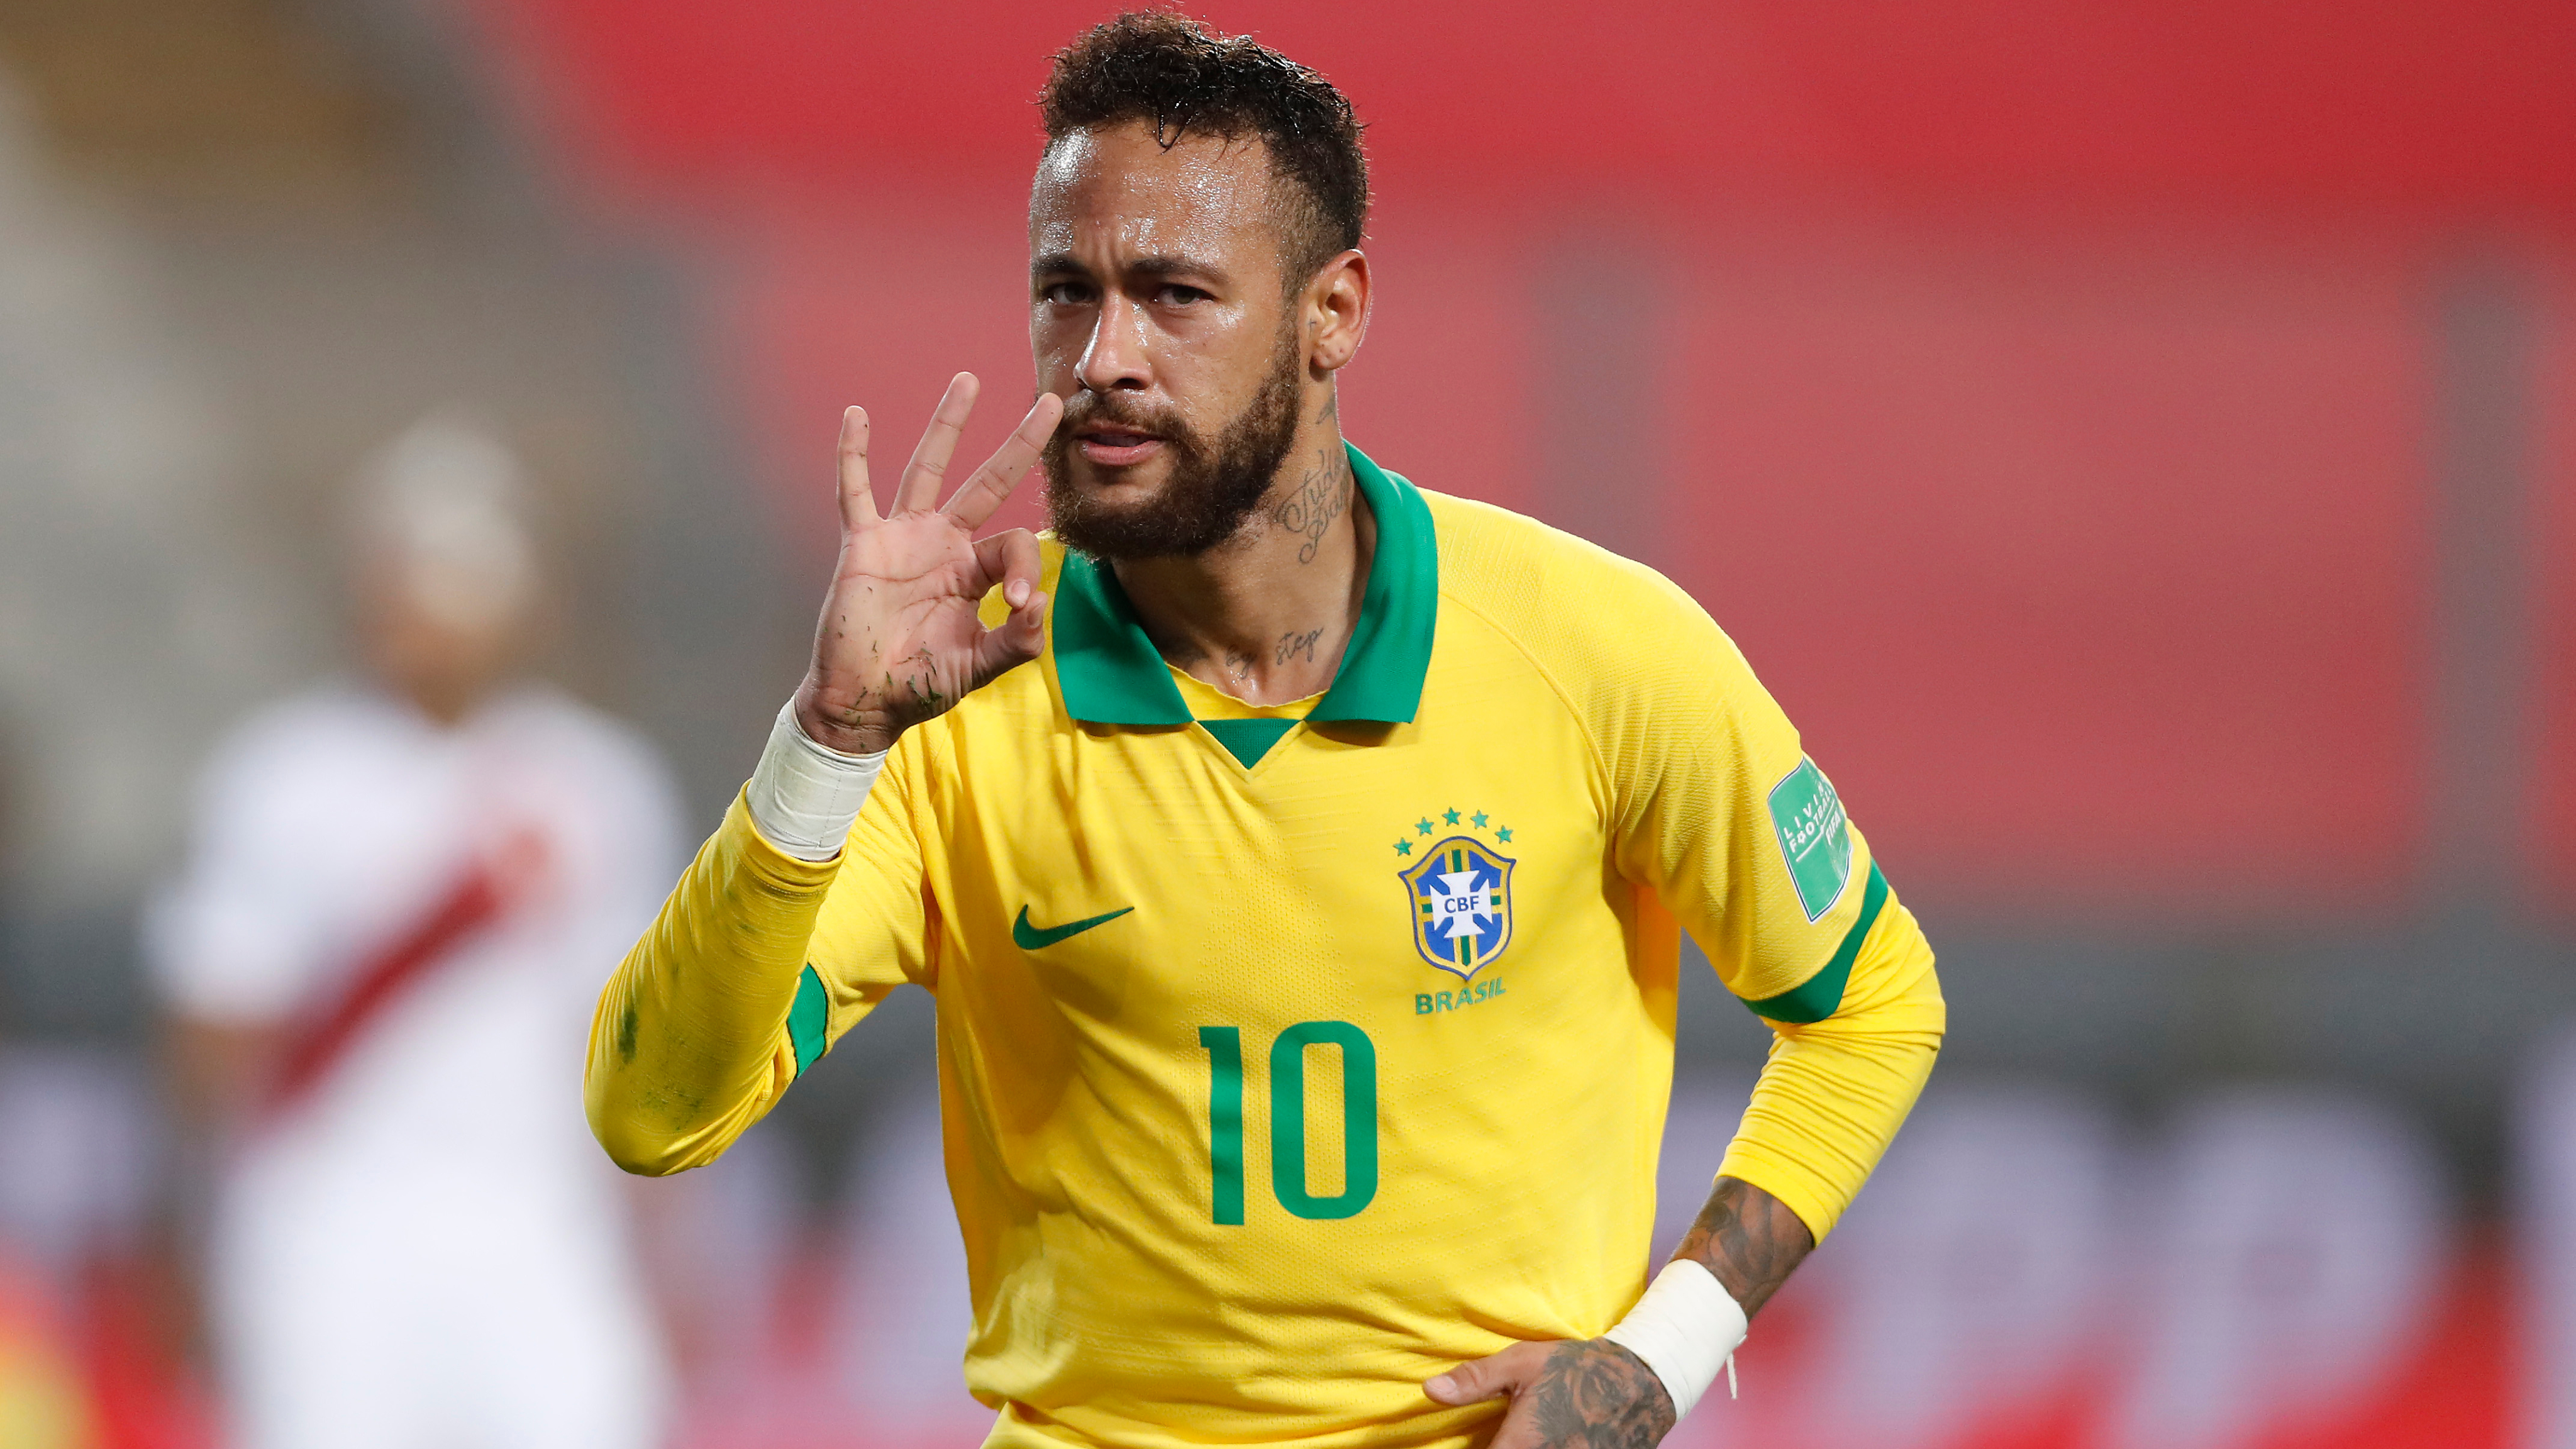 Tabarez relieved to be facing Brazil without Neymar